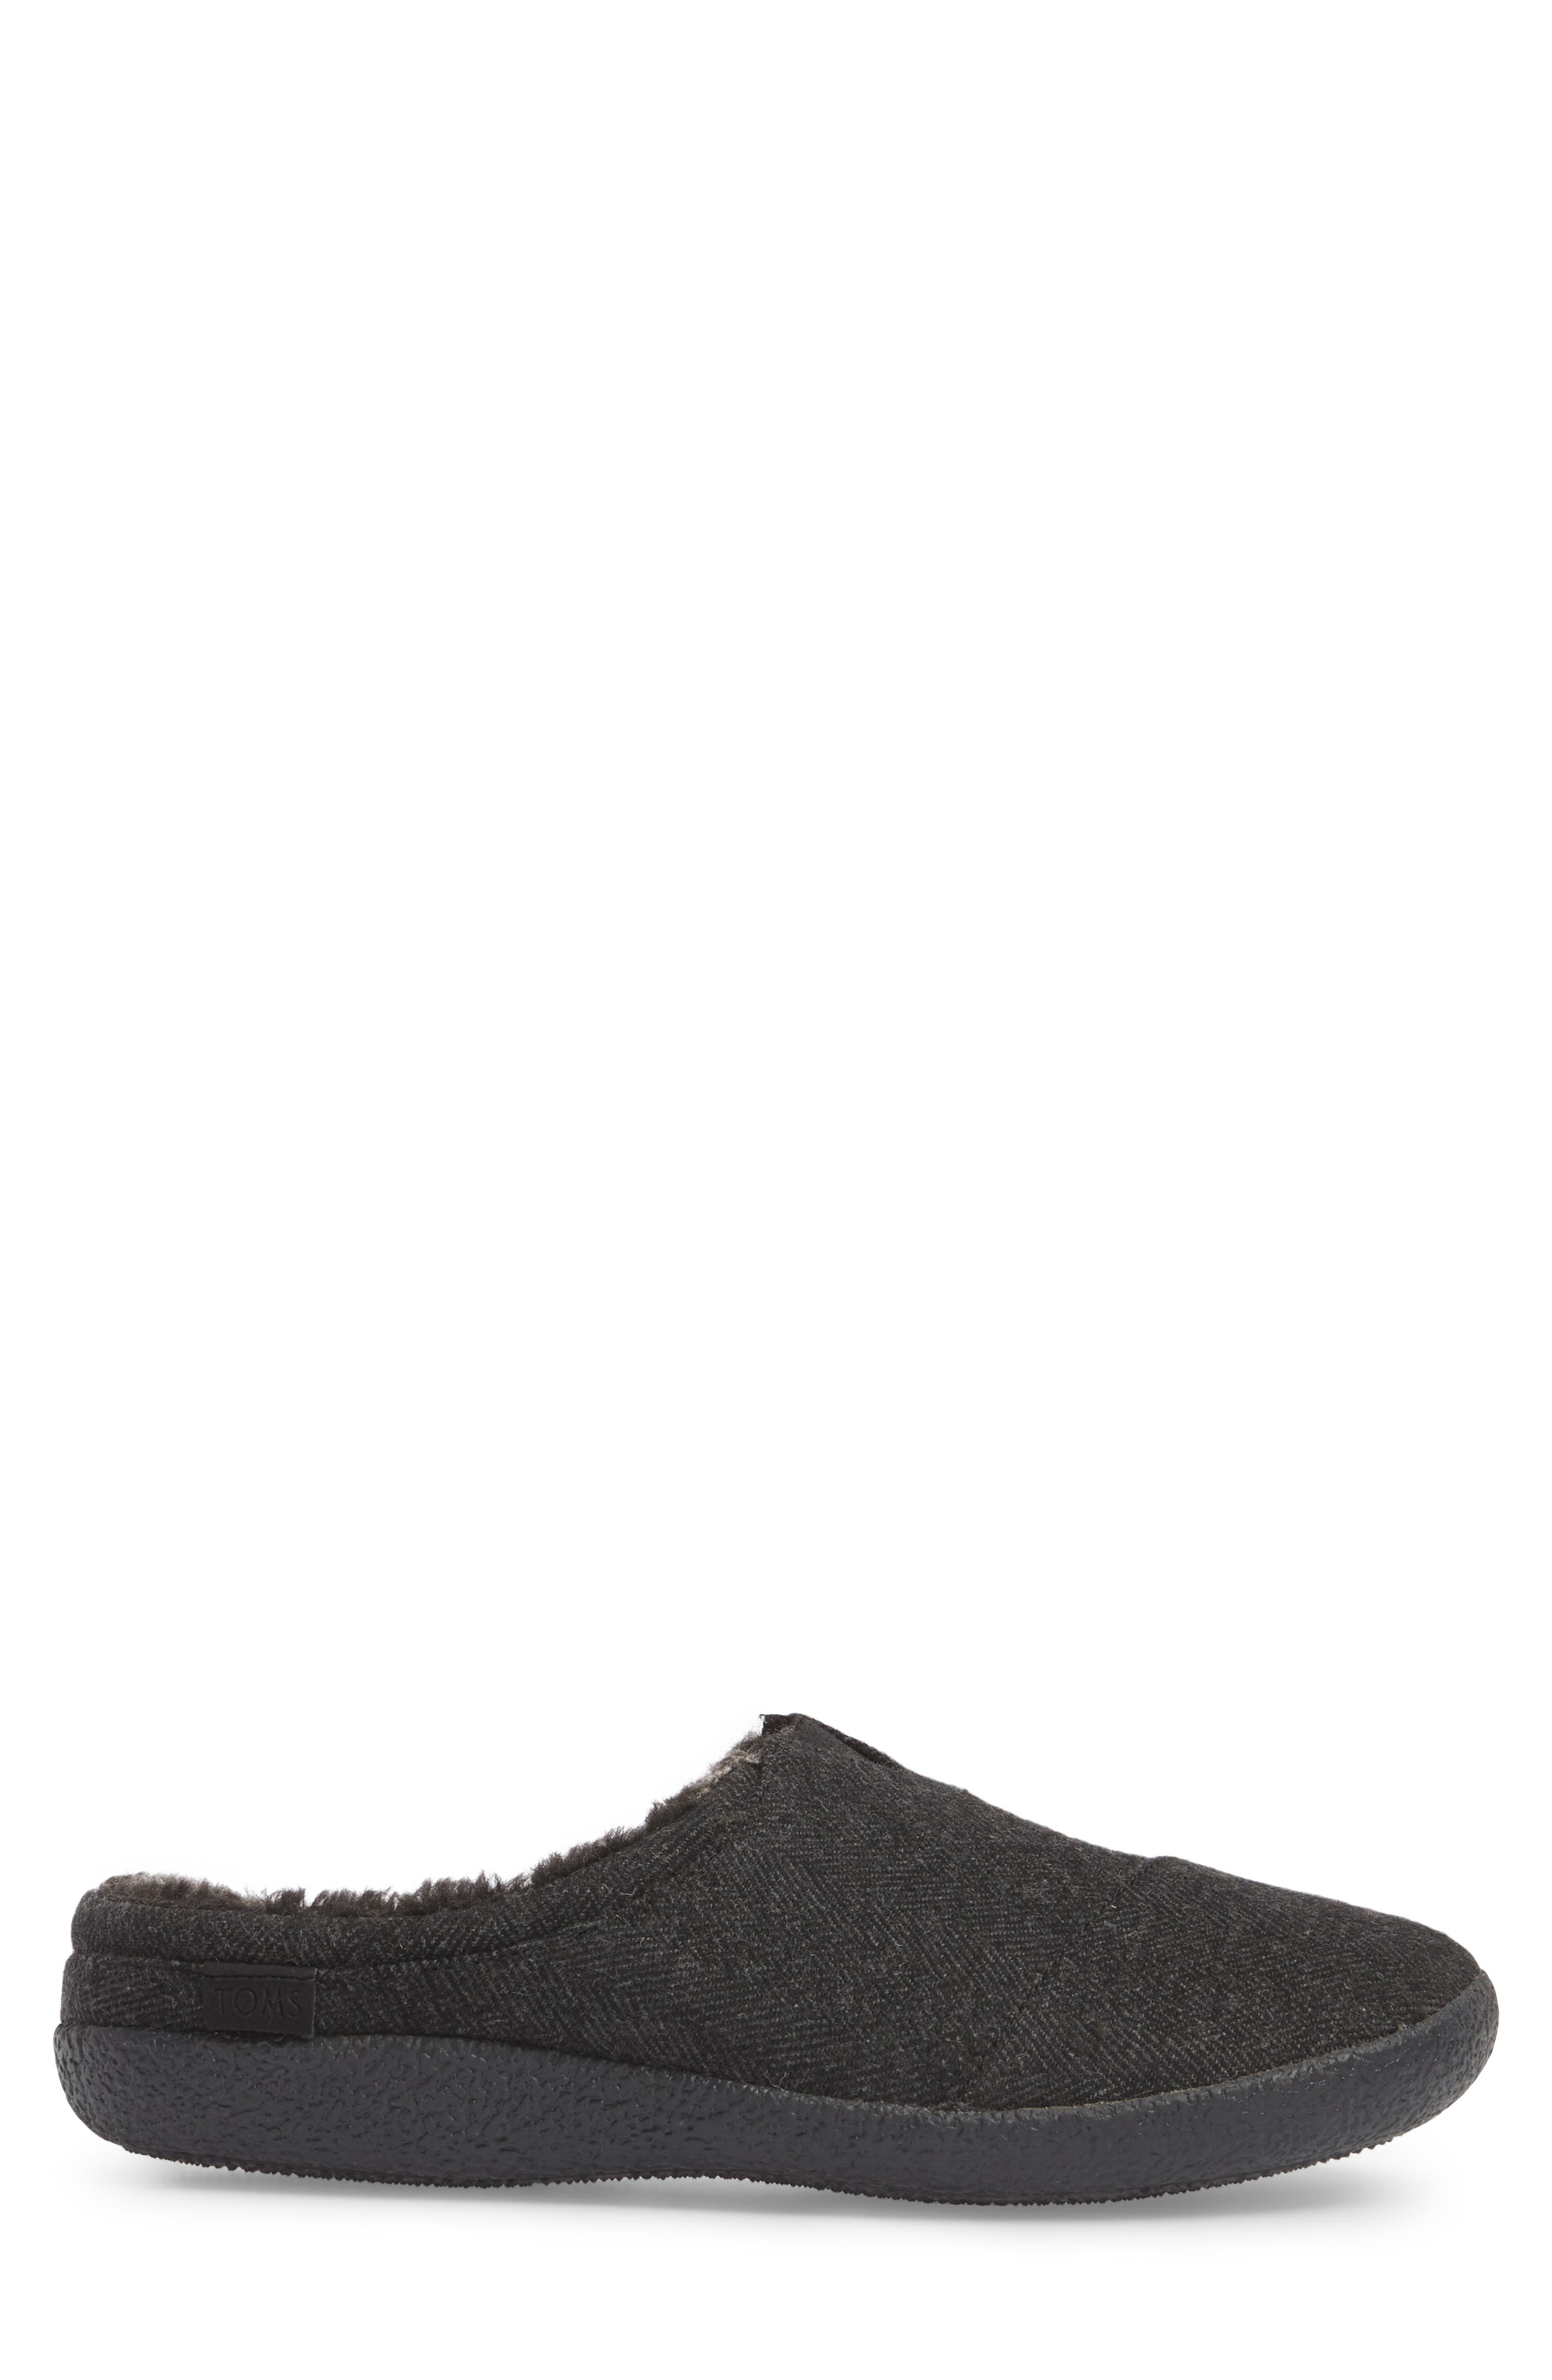 Berkeley Slipper with Faux Fur Lining,                             Alternate thumbnail 3, color,                             Black